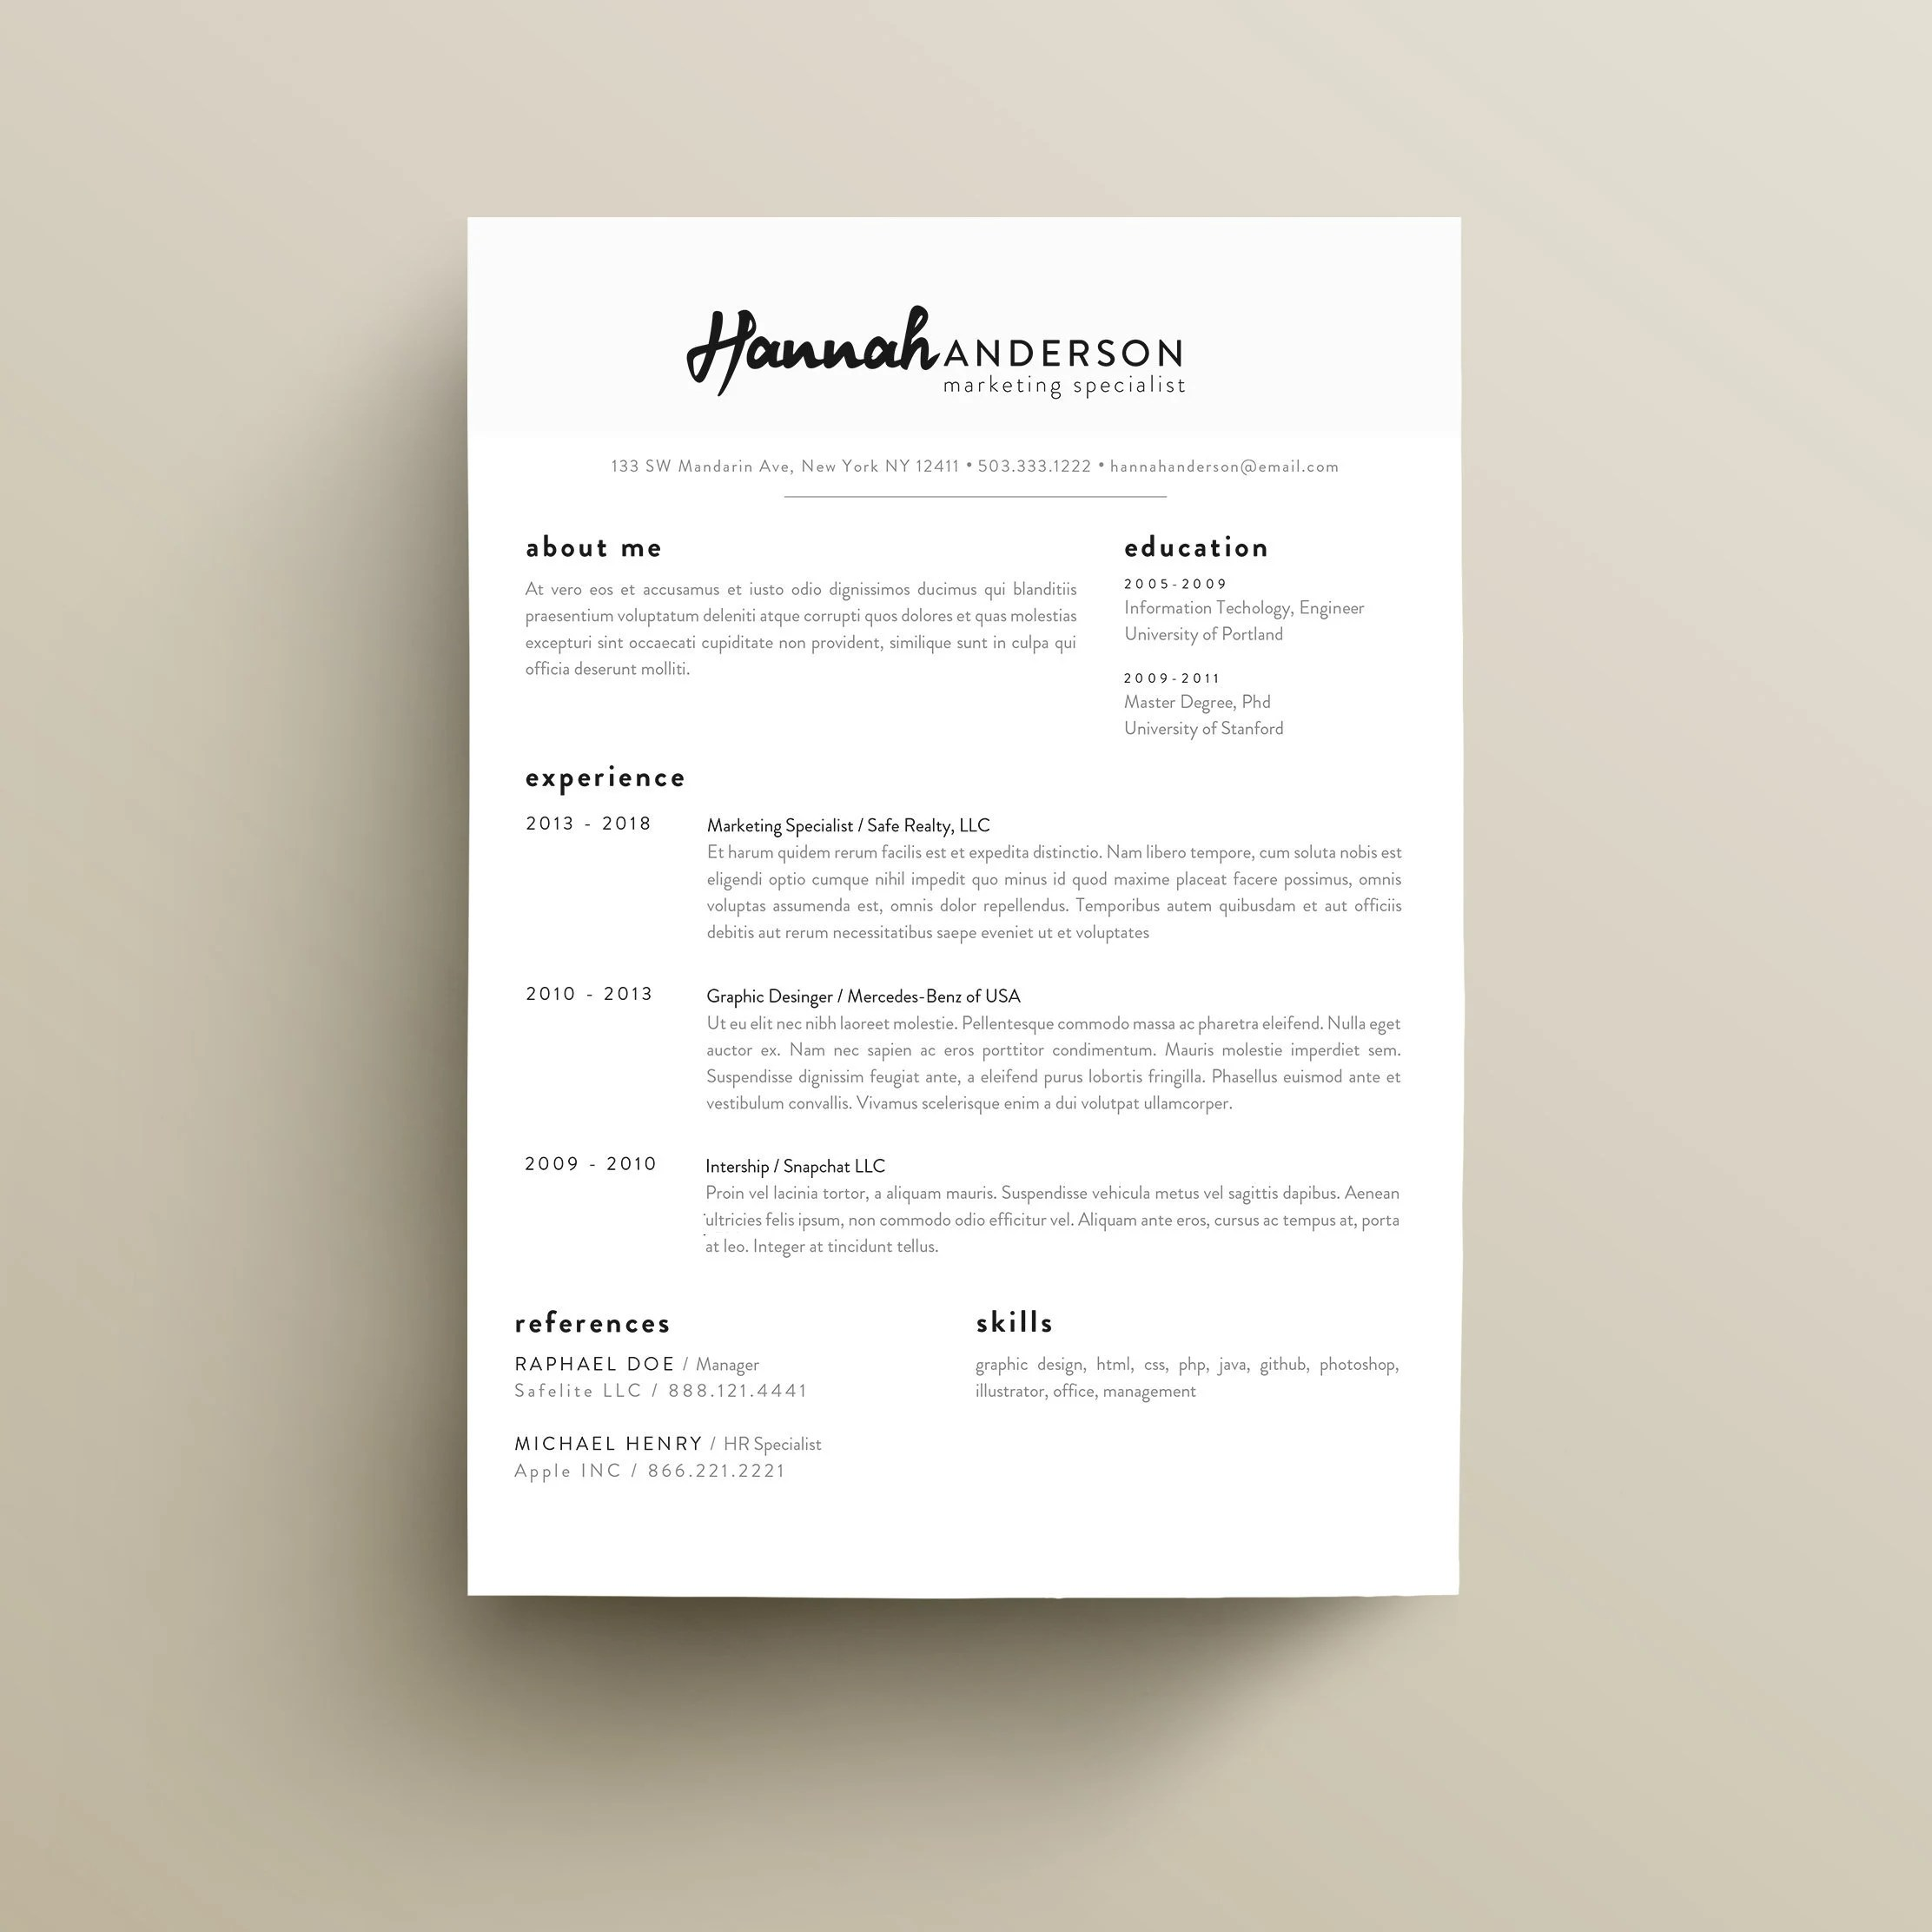 Professional Resume CV Template Clean and eye catching Etsy